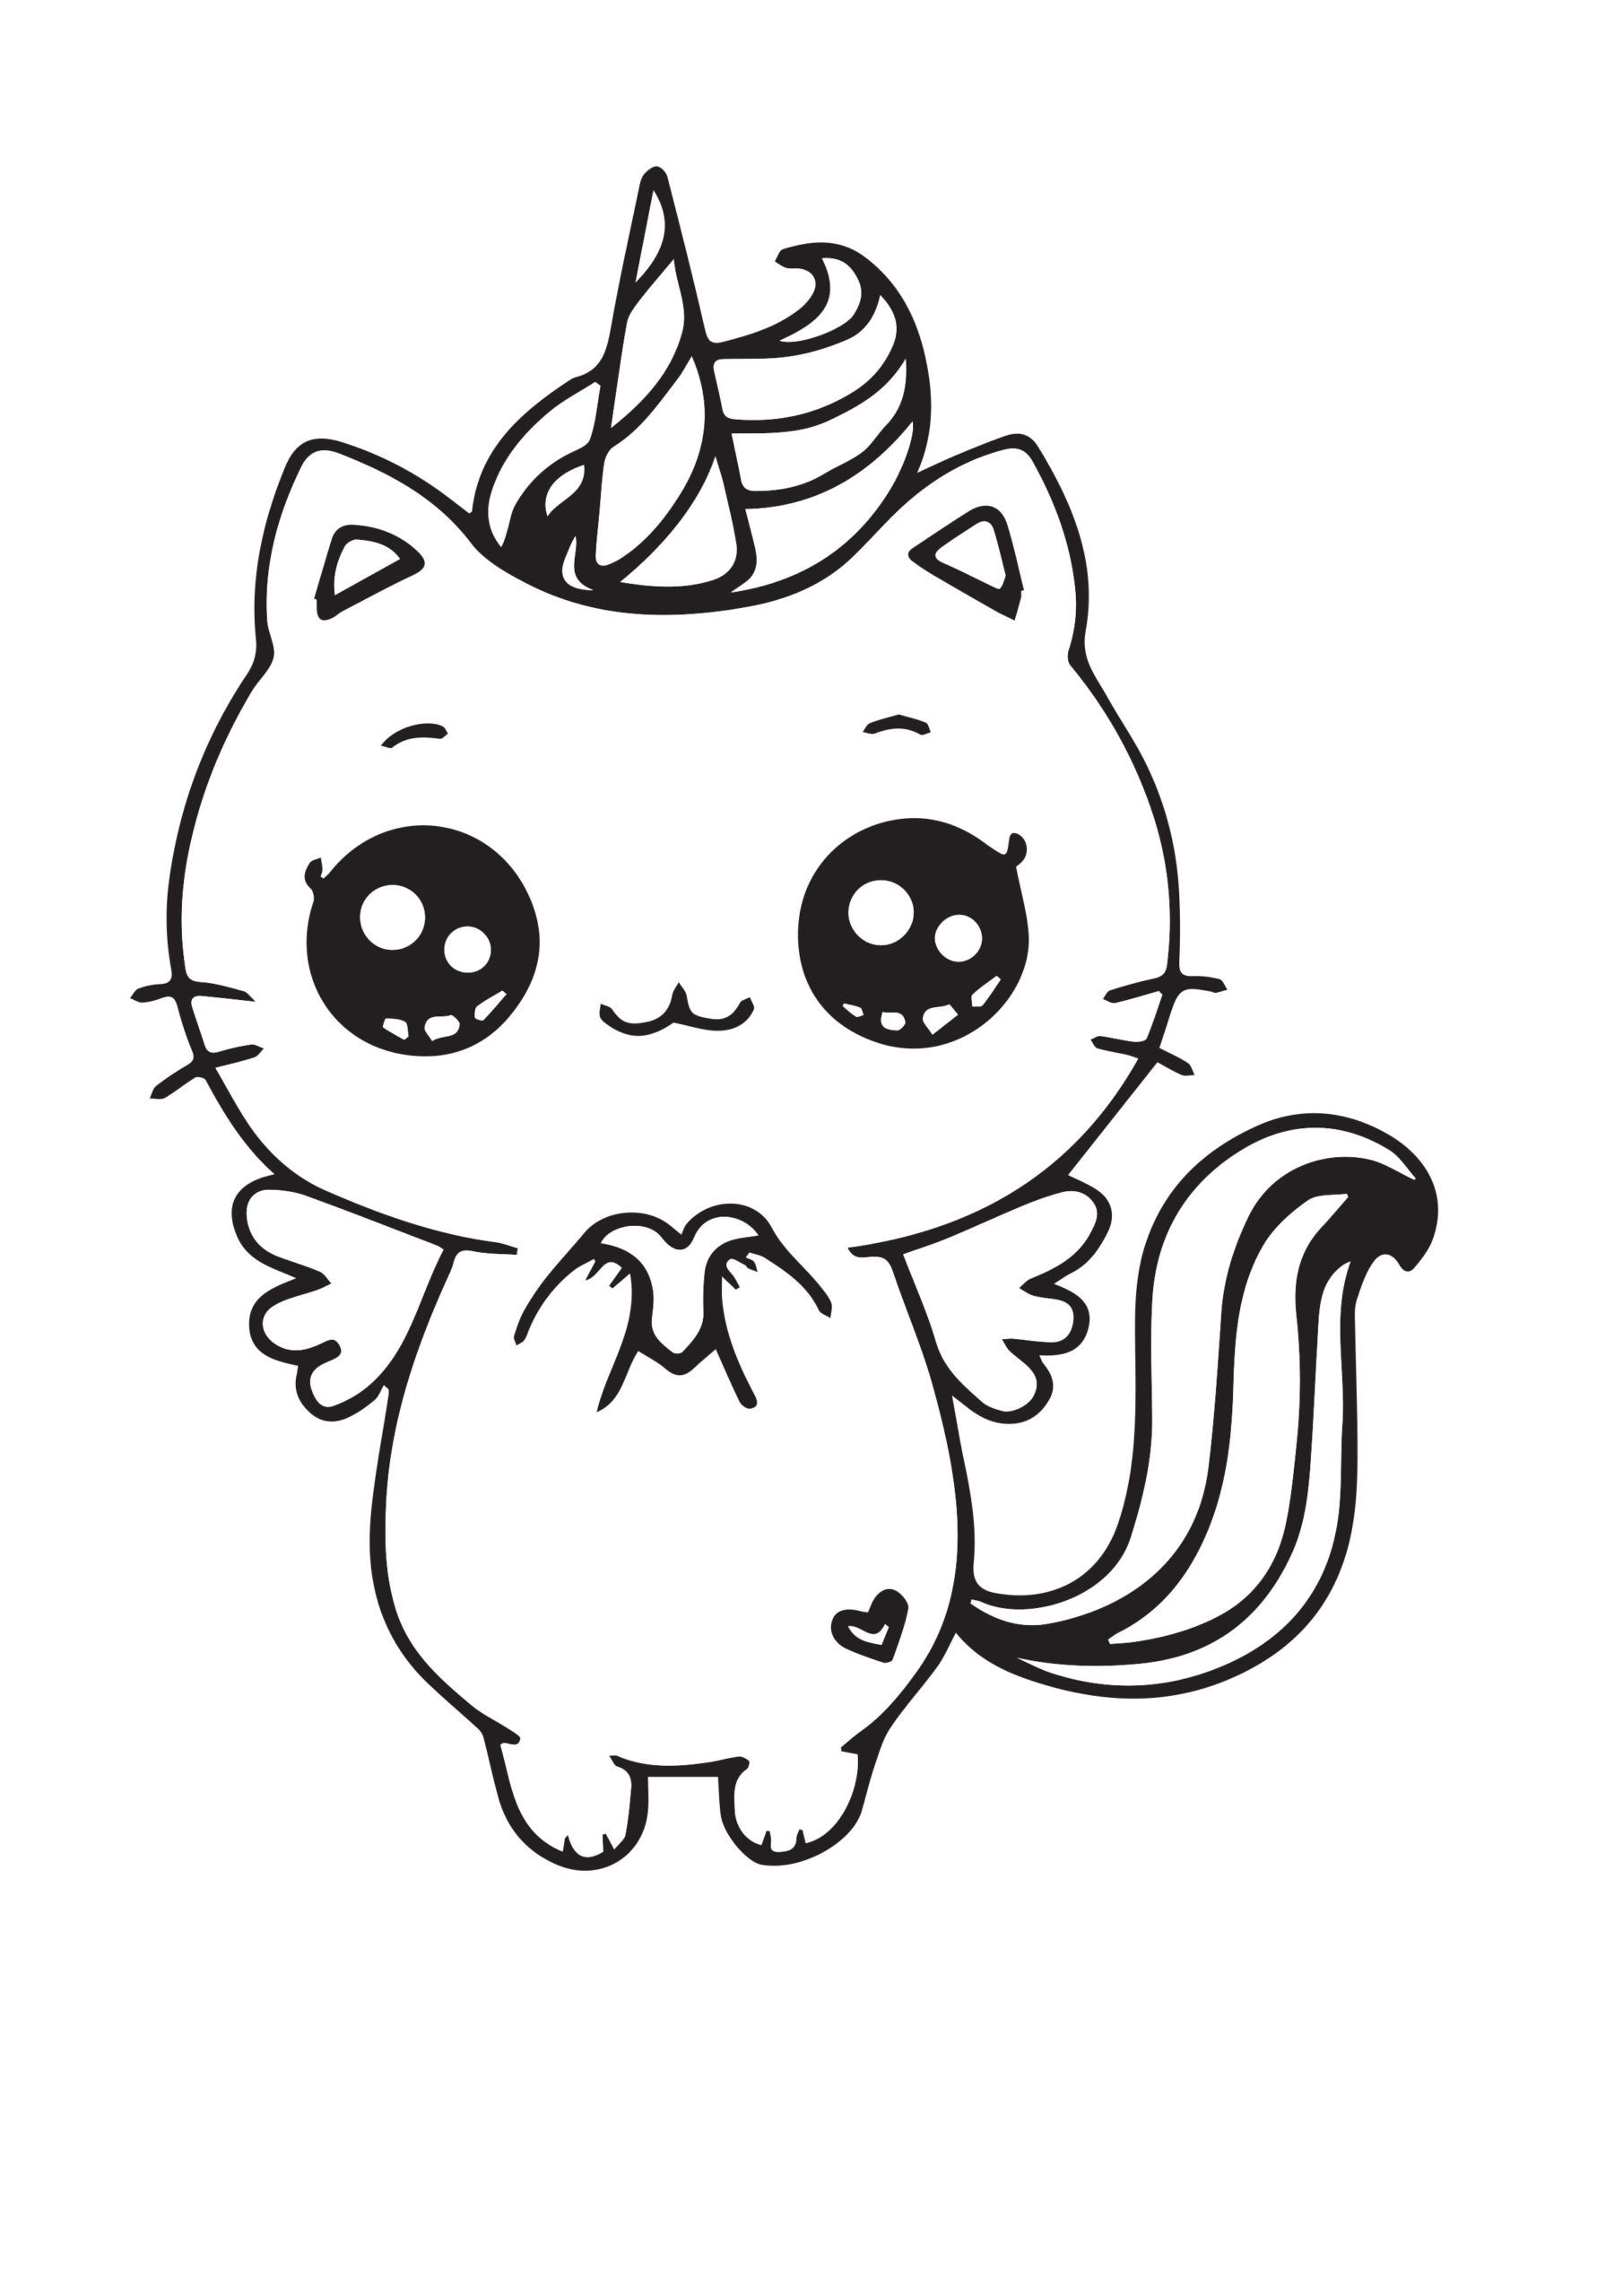 Unicorn Cat Crayola Coloring Page